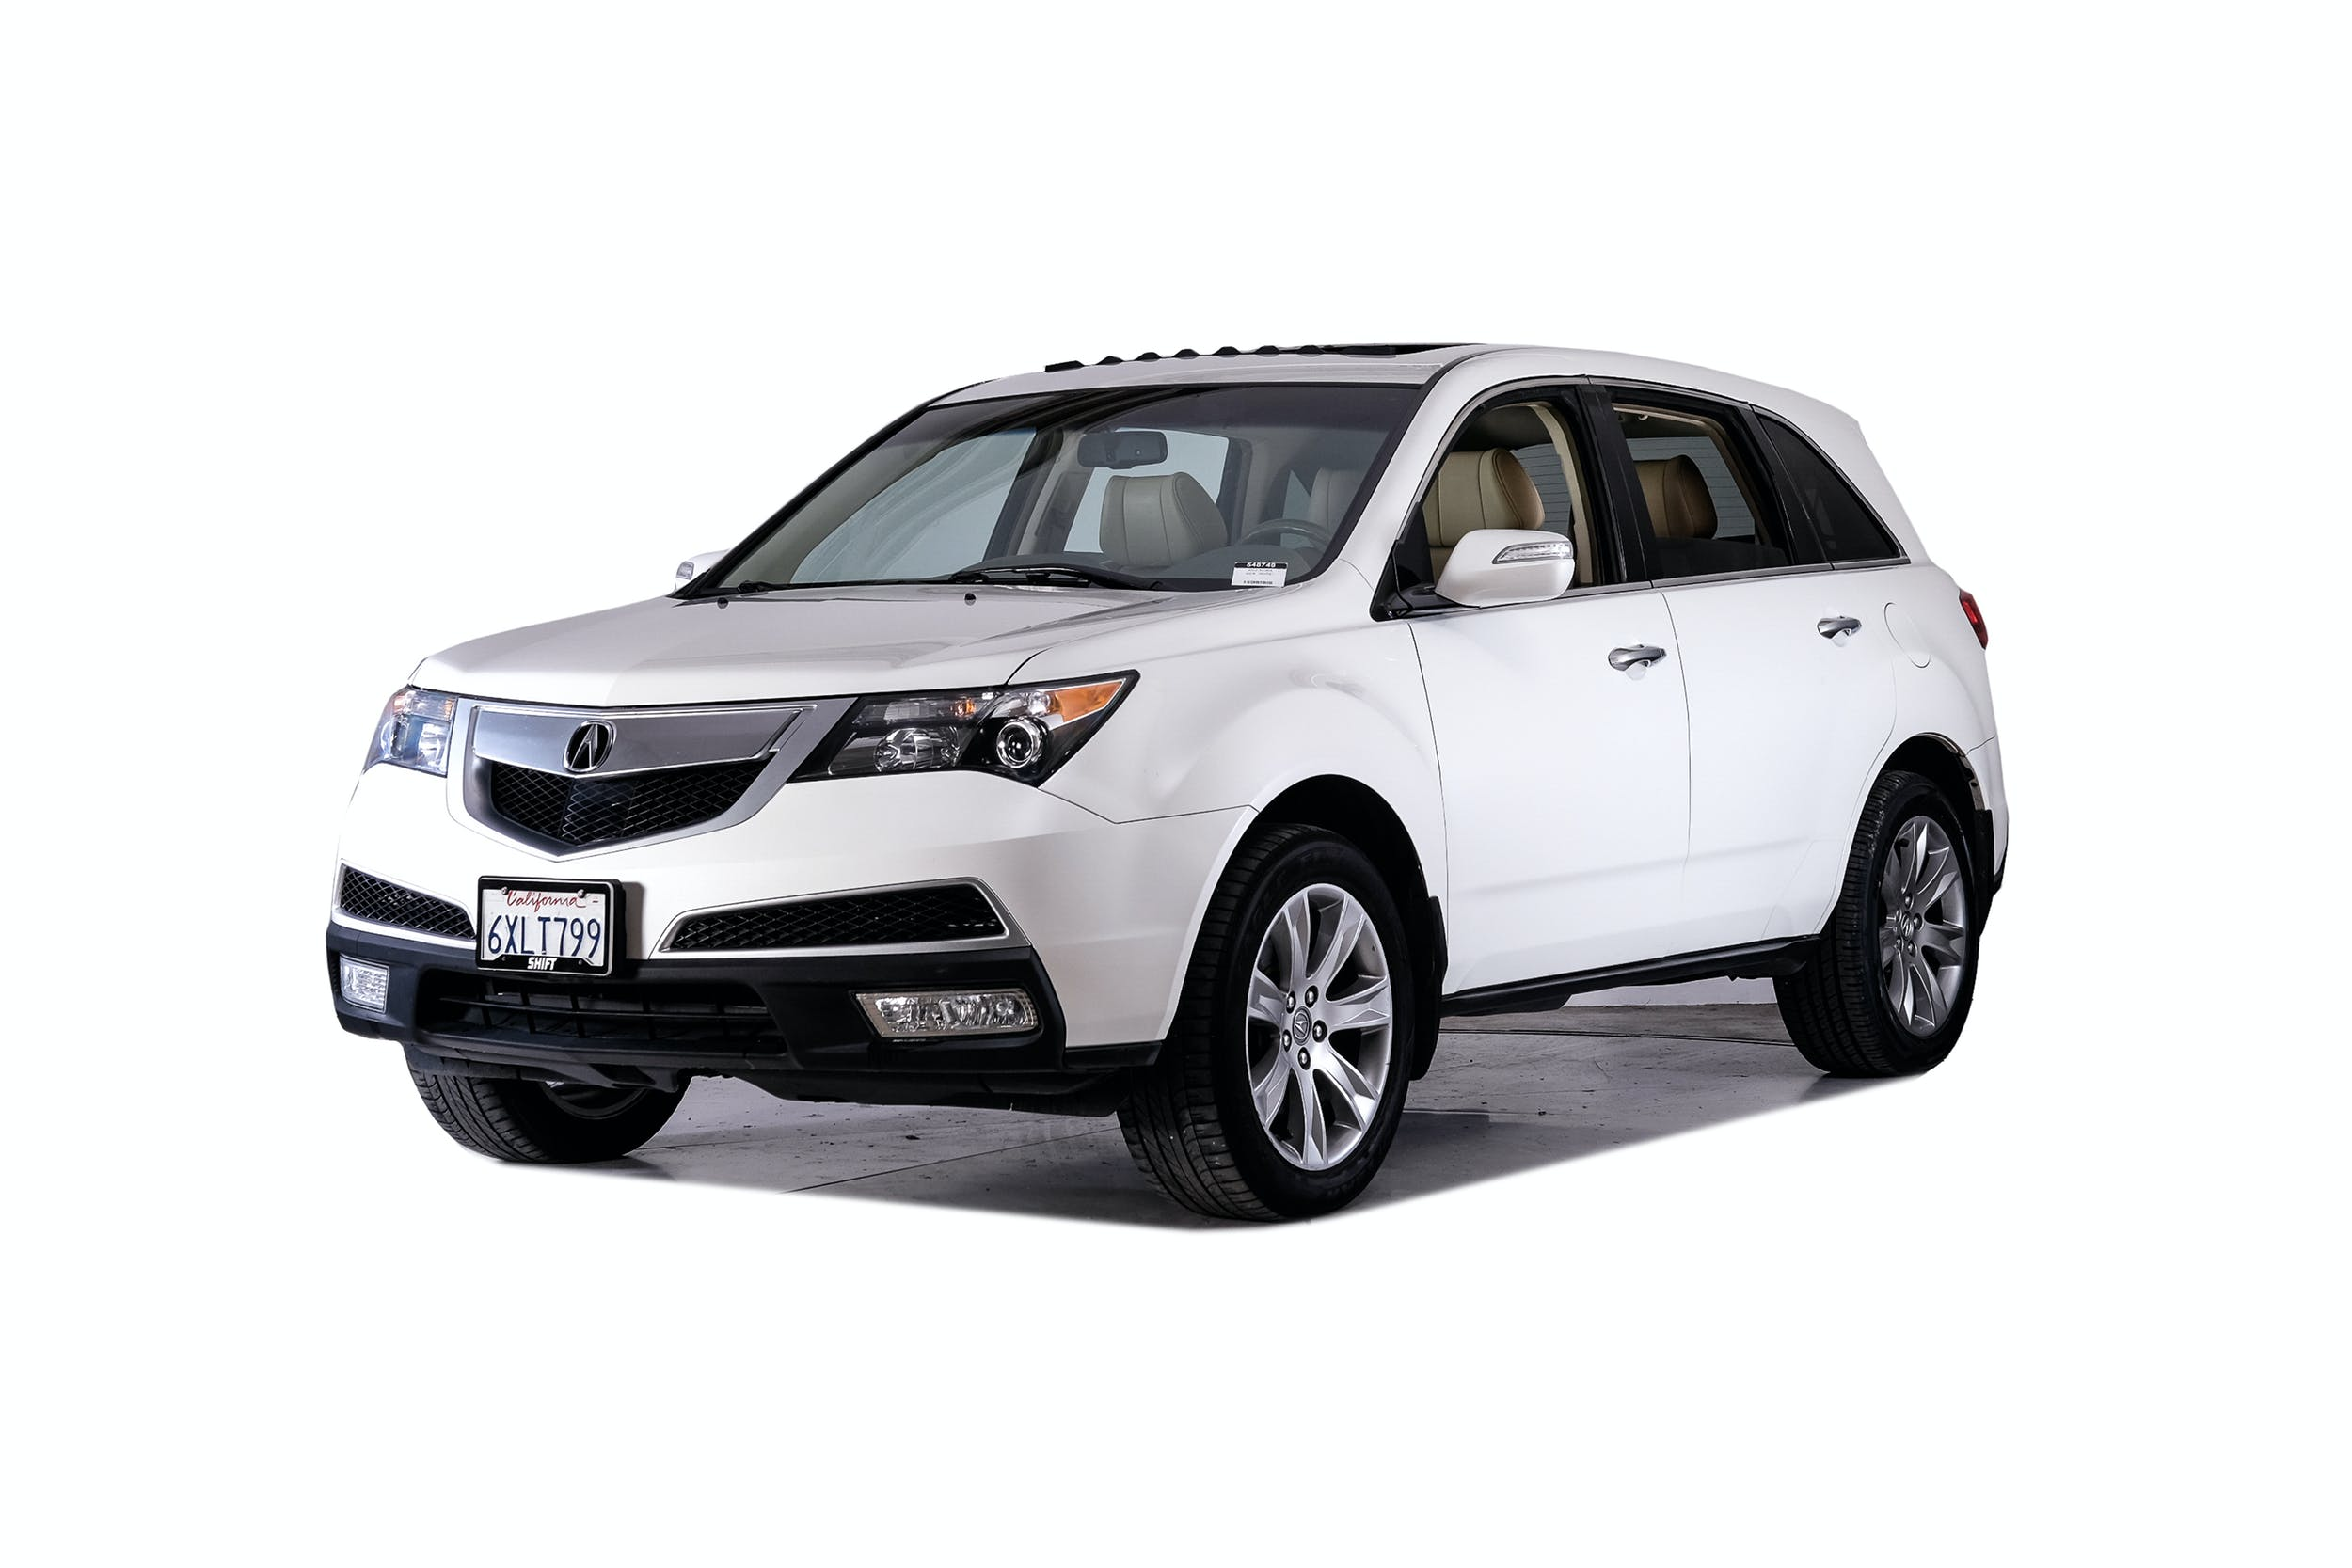 competitor put of ids audi sound photos wells bud pace hot is mdx luxurious acura on the